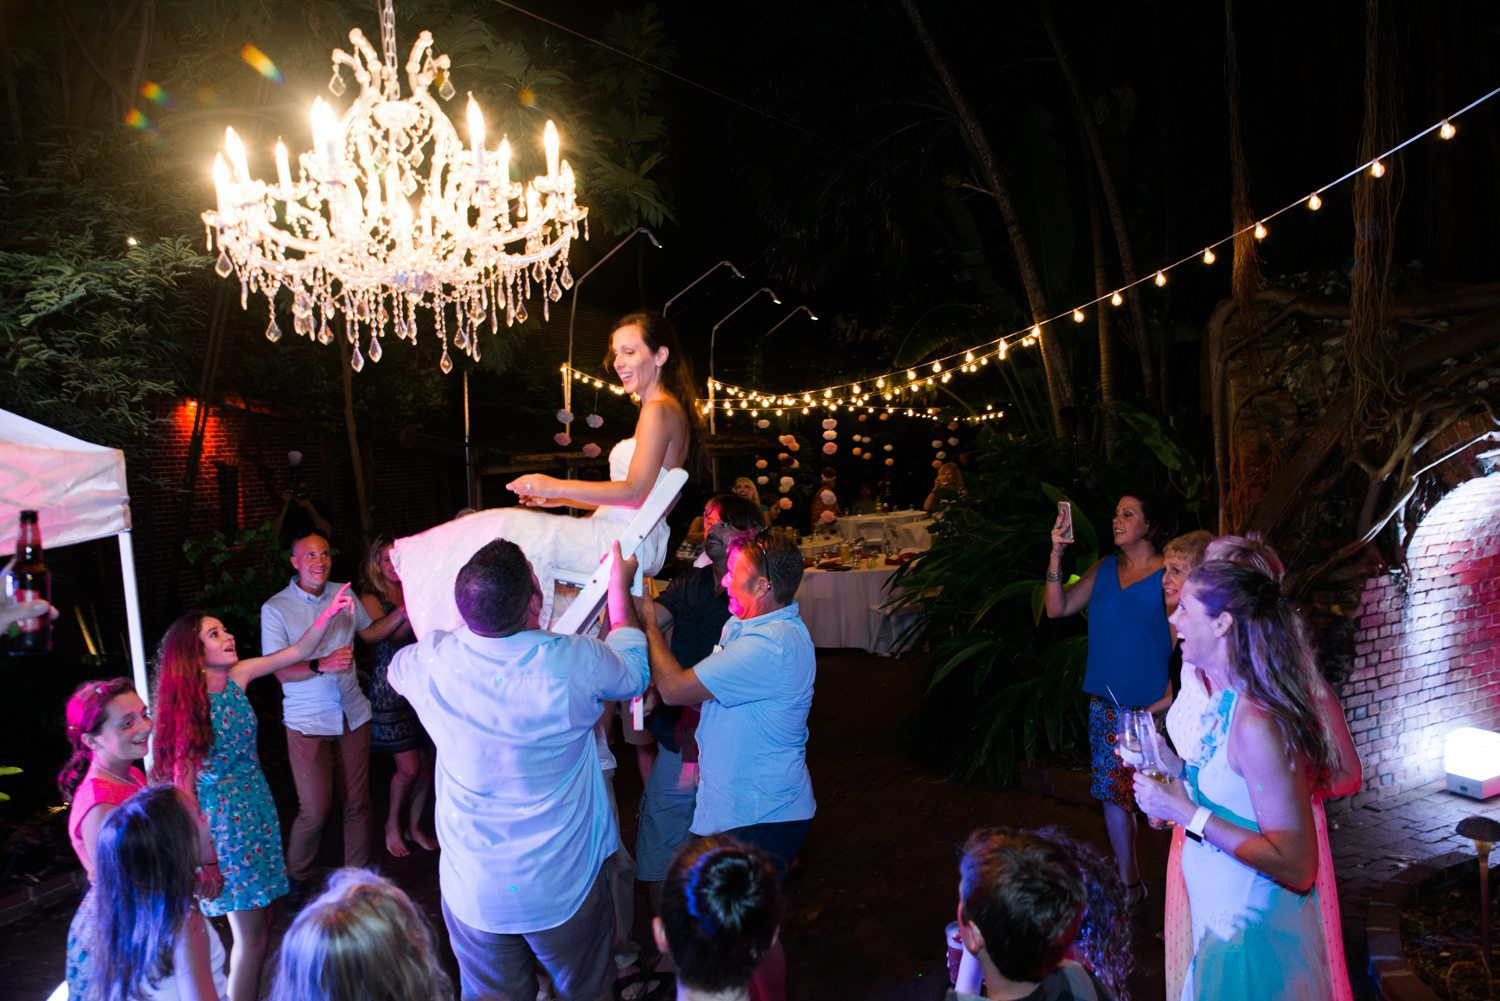 Tracey Joe Key West Garden Club 46 - Tracey & Joe | Key West Wedding Photographer | Key West Garden Club